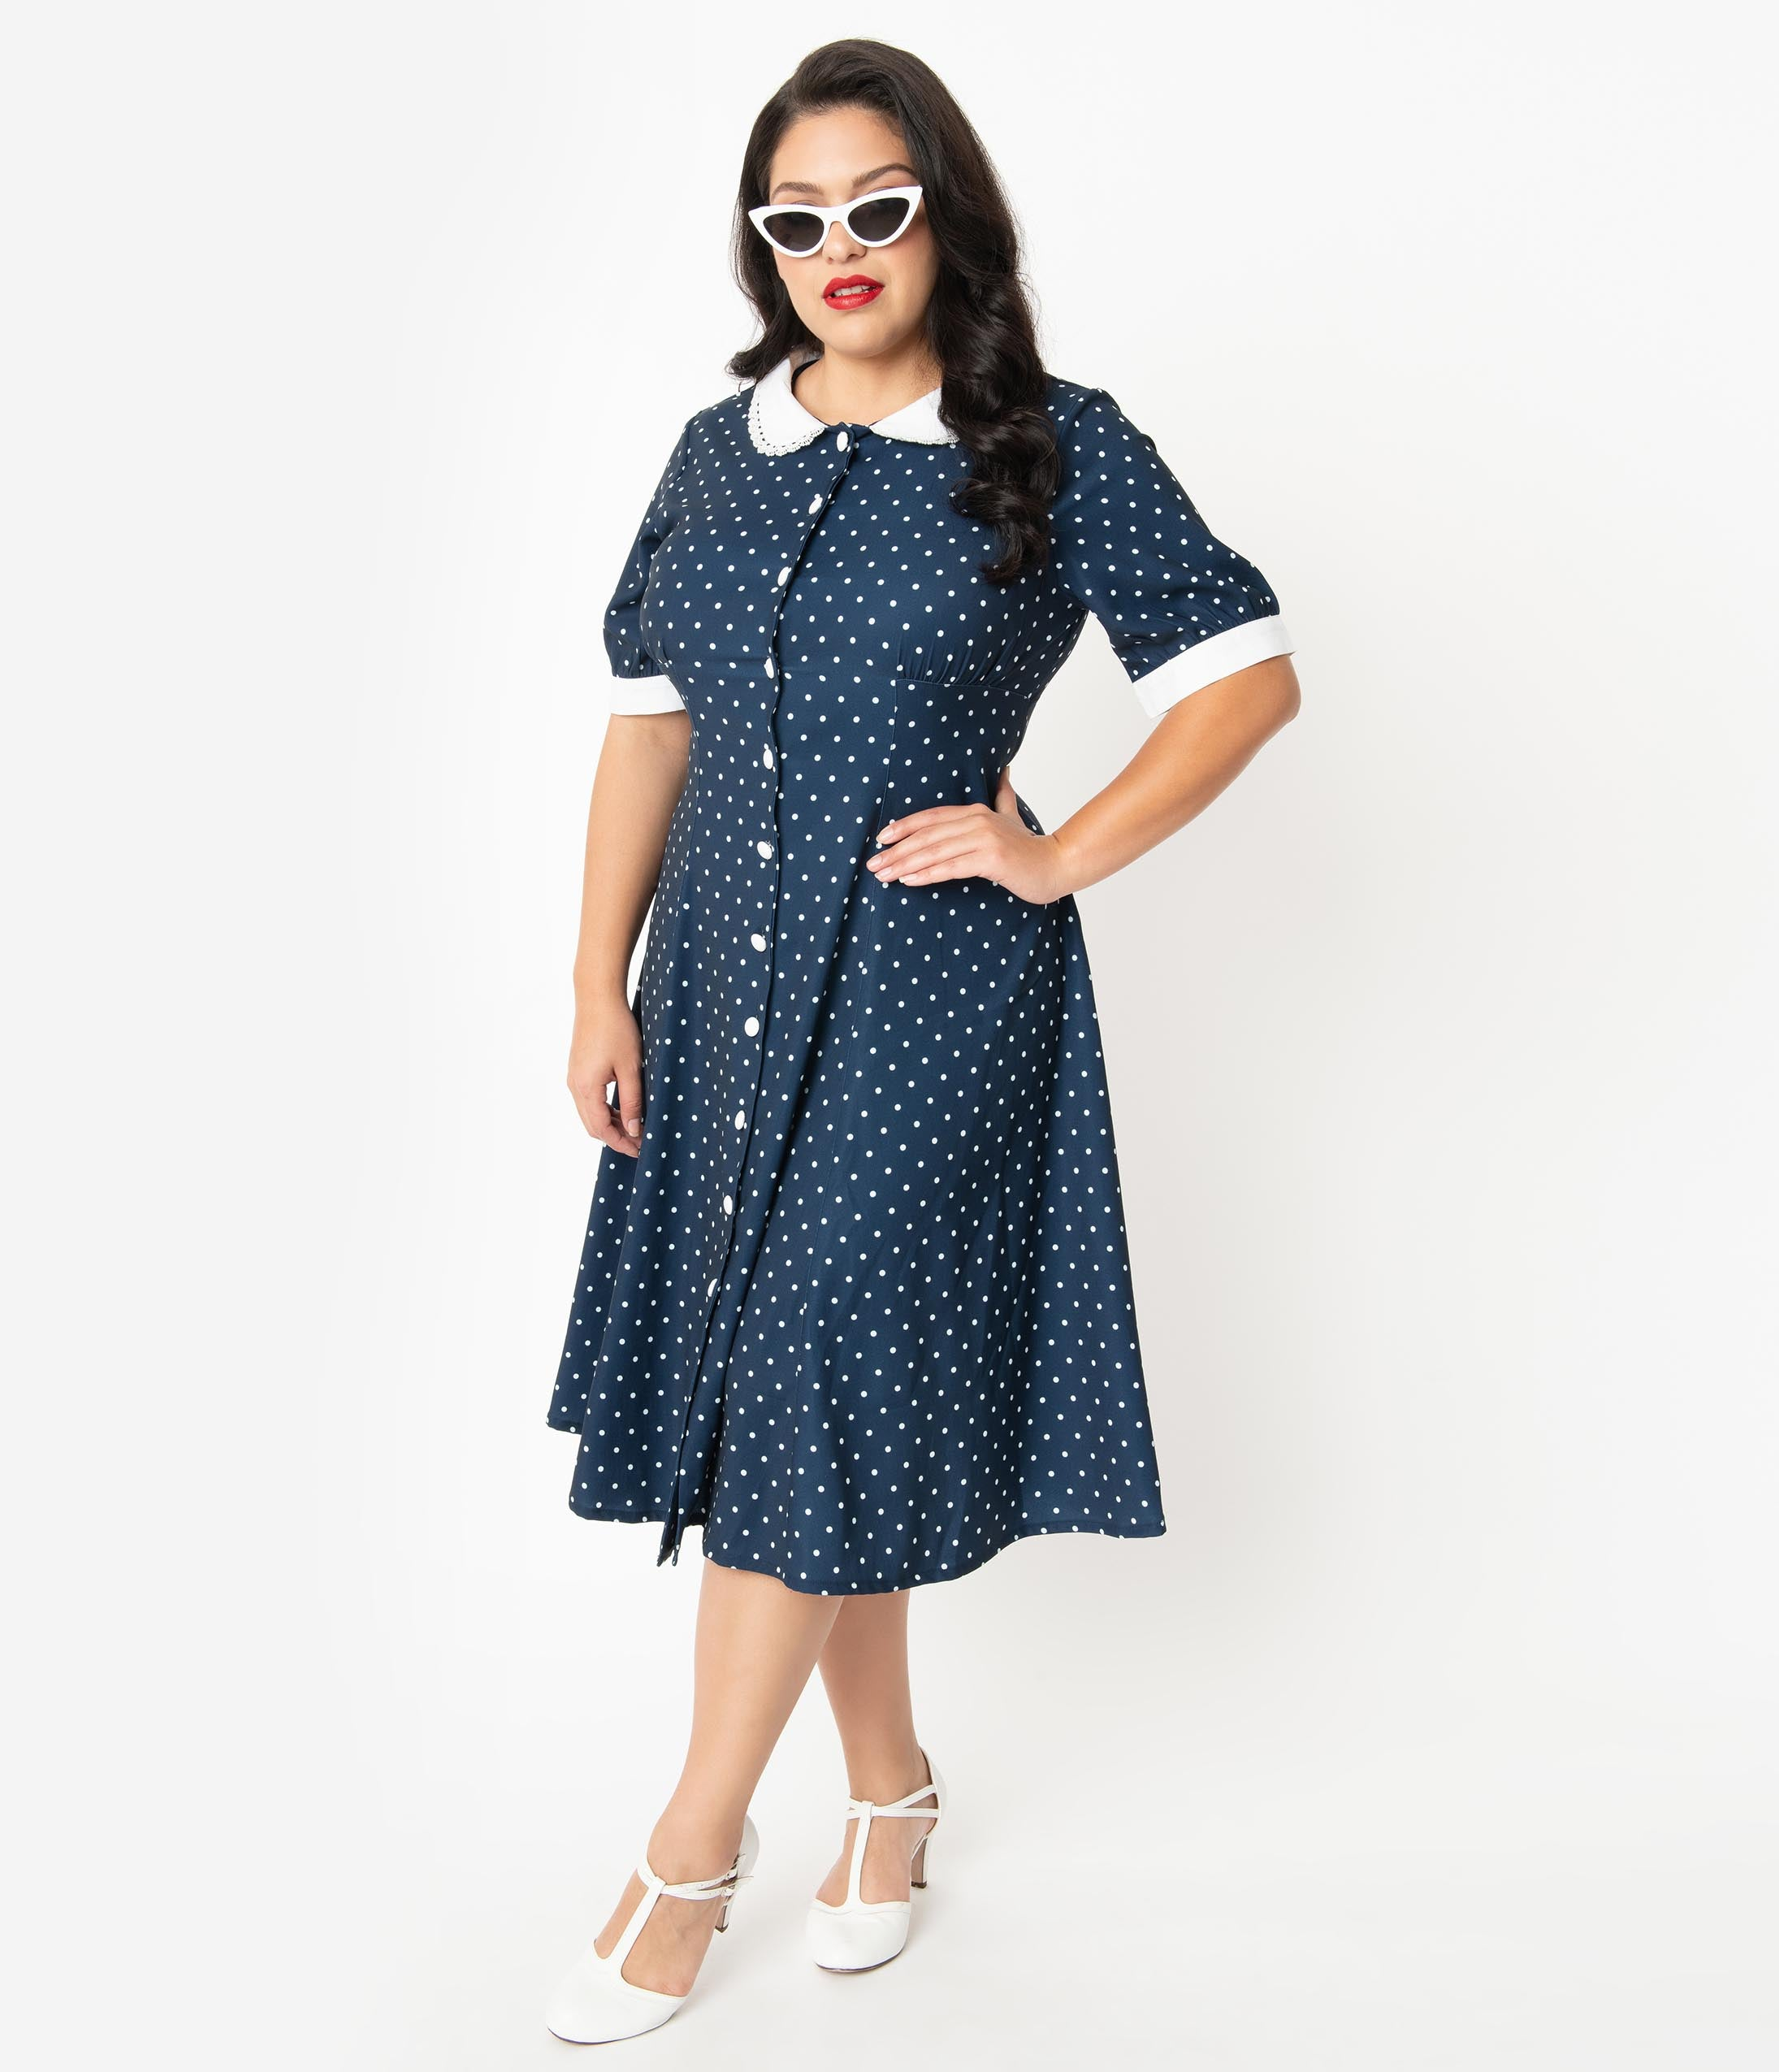 1940s Plus Size Dresses | Swing Dress, Tea Dress Plus Size 1940S Style Navy Blue  White Polka Dot Raina Shirt Dress $78.00 AT vintagedancer.com